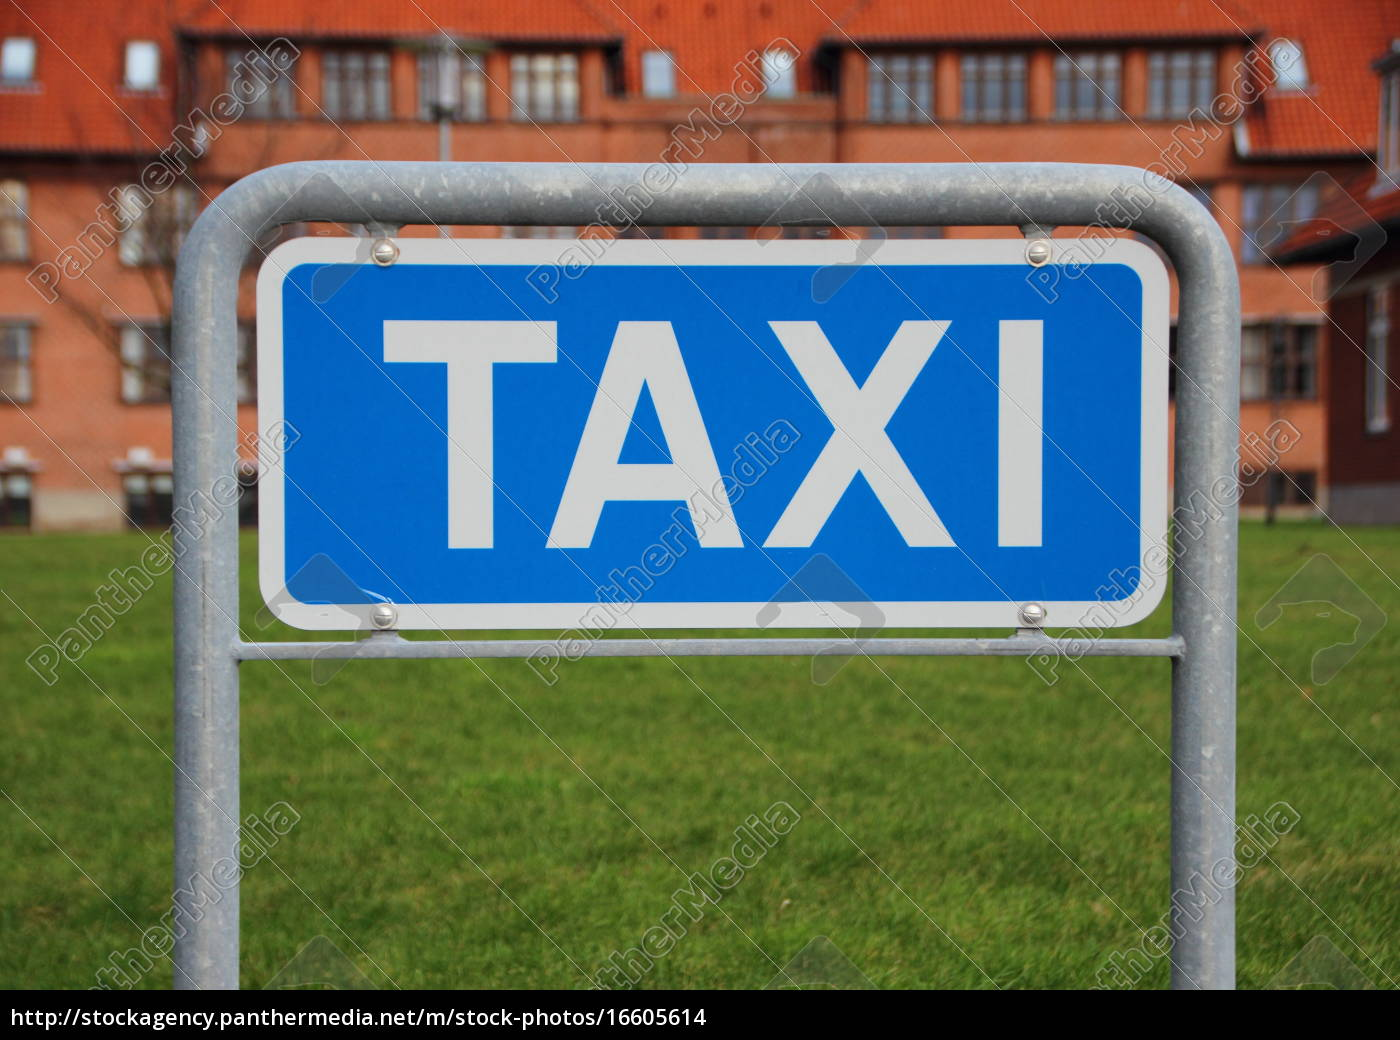 taxi, sign, closeup, with, building, and - 16605614